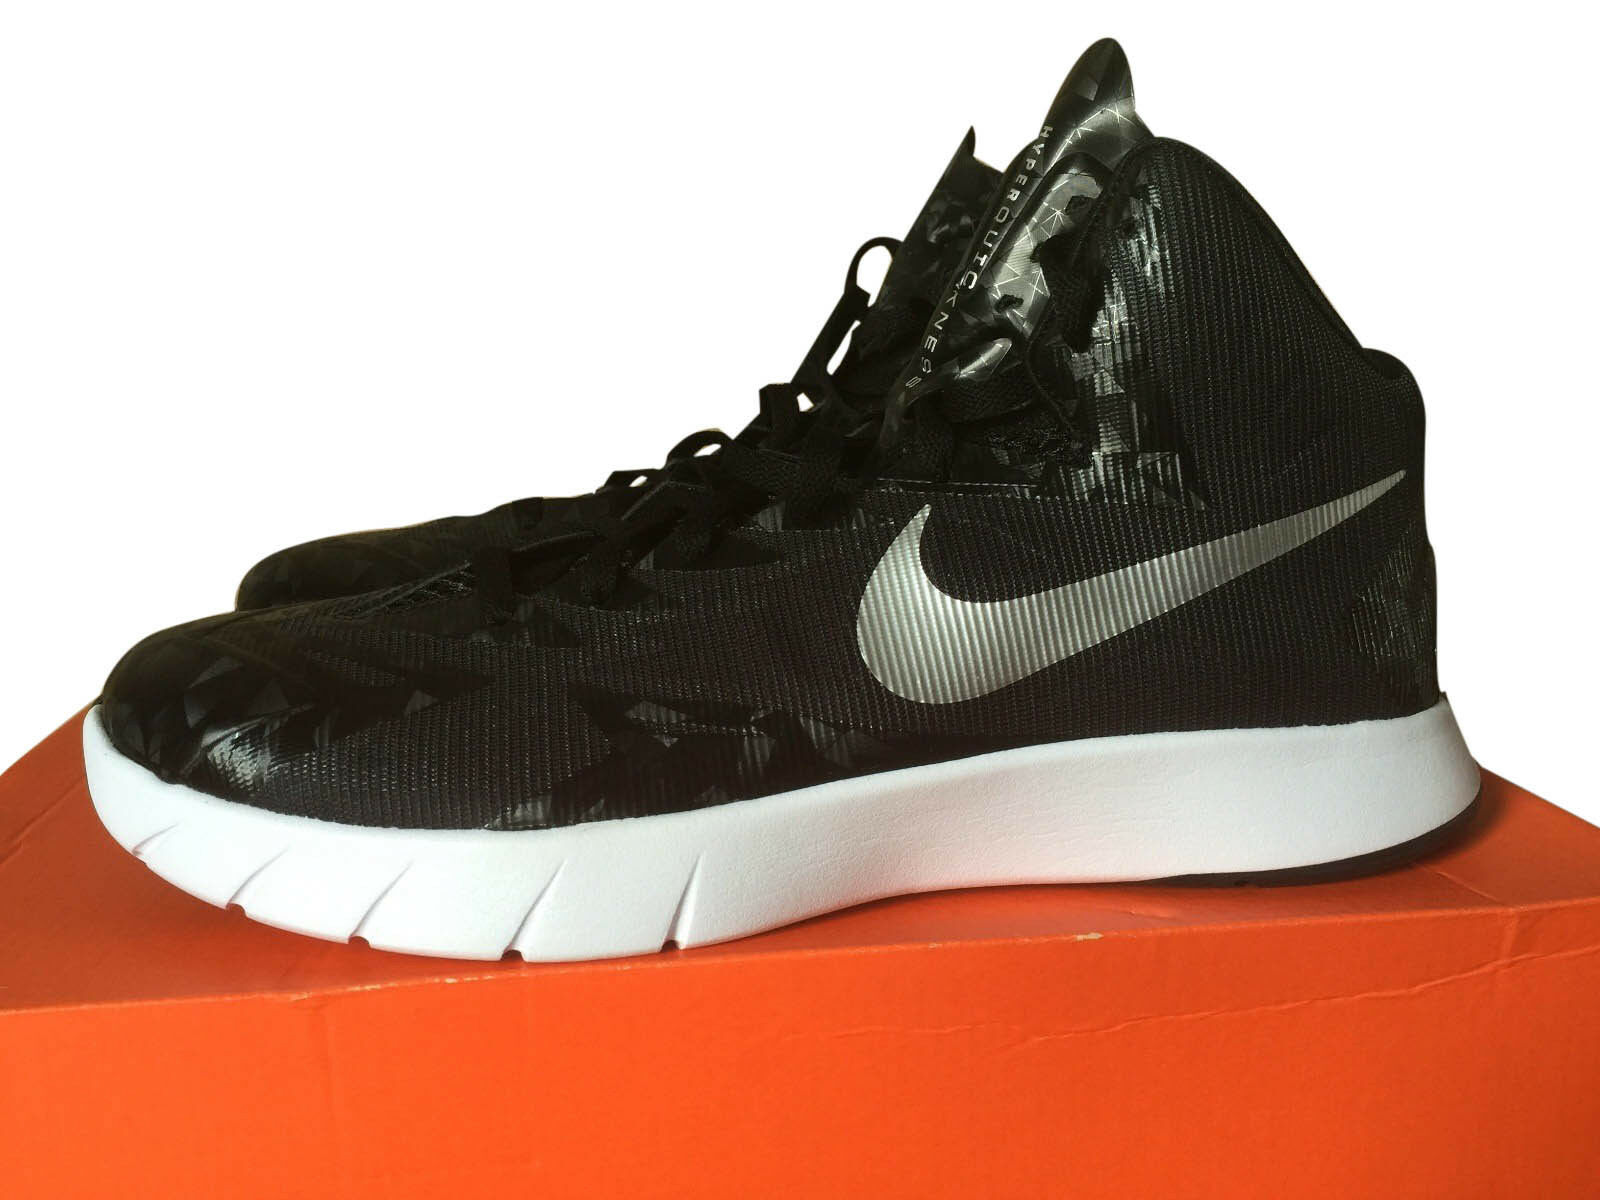 Men's Nike Lunar HyperQuickness TB size 11 Black and White   BRAND NEW